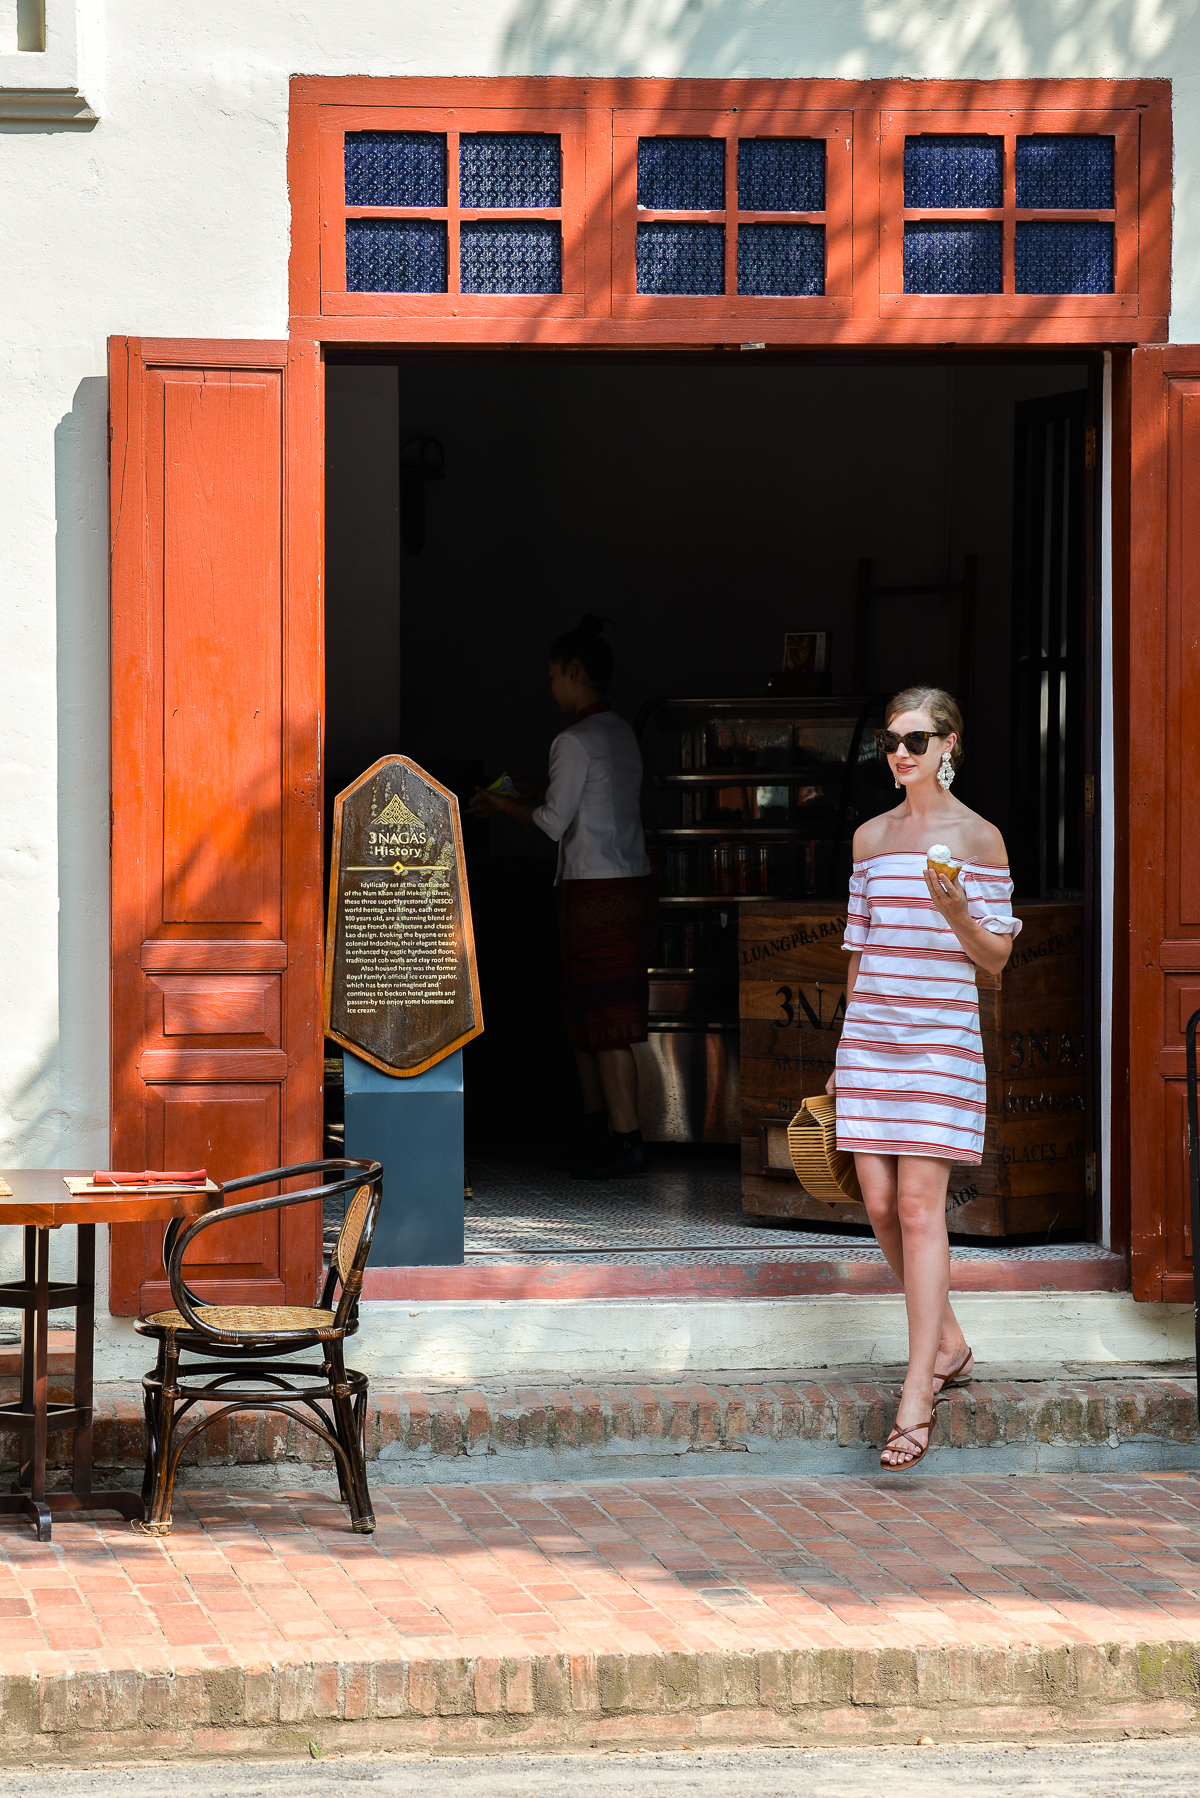 Stacie Flinner 3 Nagas Complete Guide to Luang Prabang-69